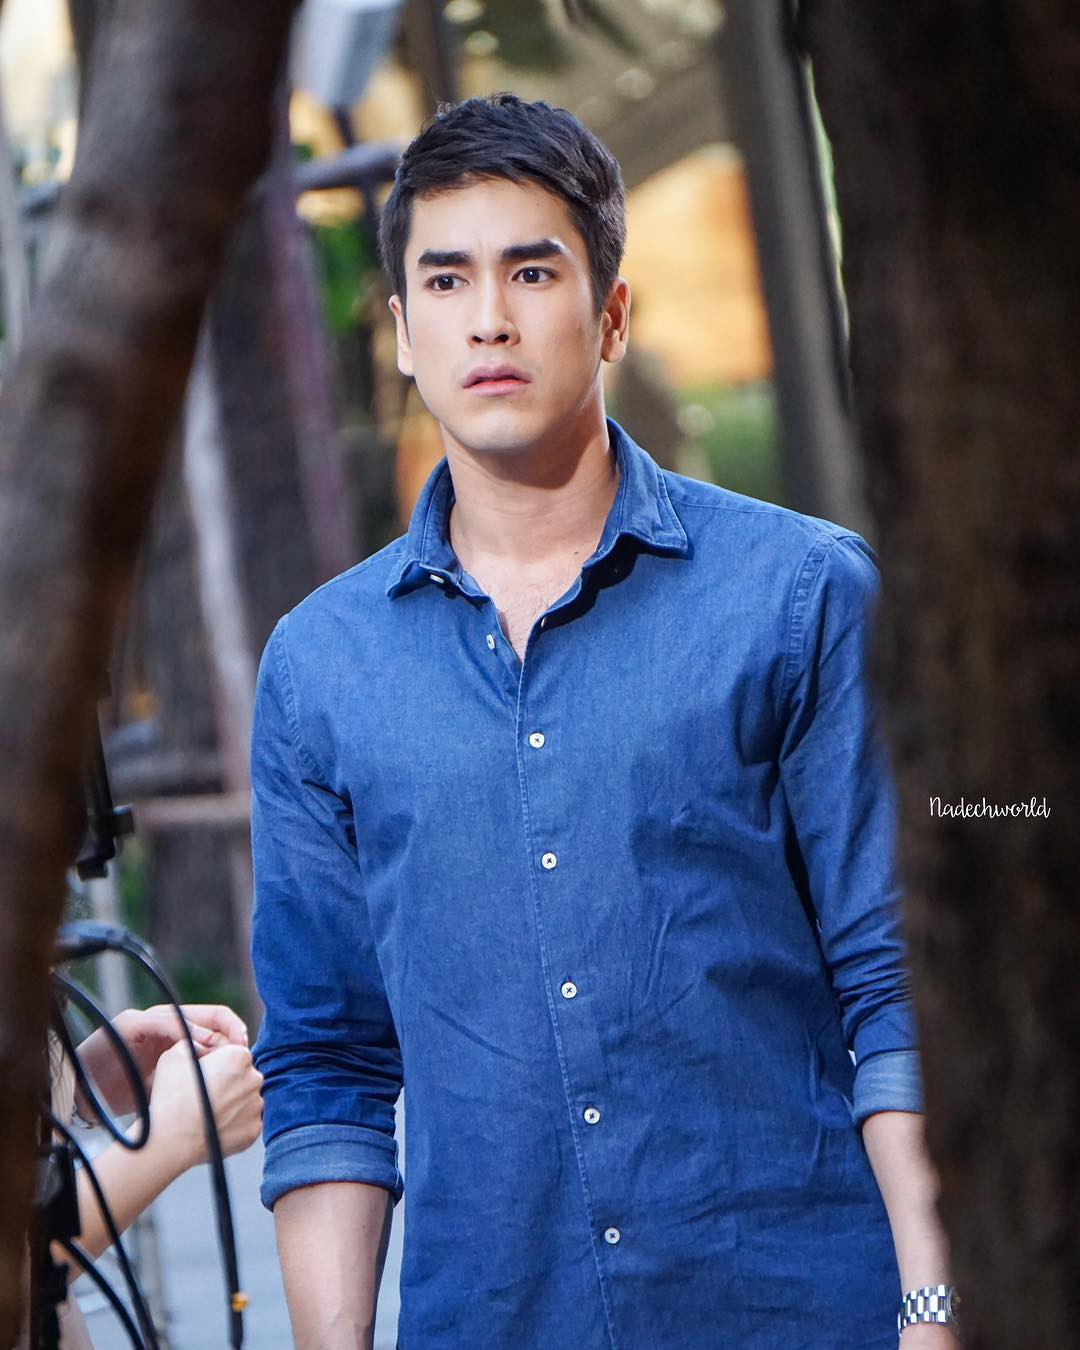 Most impressive hybrids in Thailand: Nadech, Mario both exist but number one is unexpected - Photo 34.